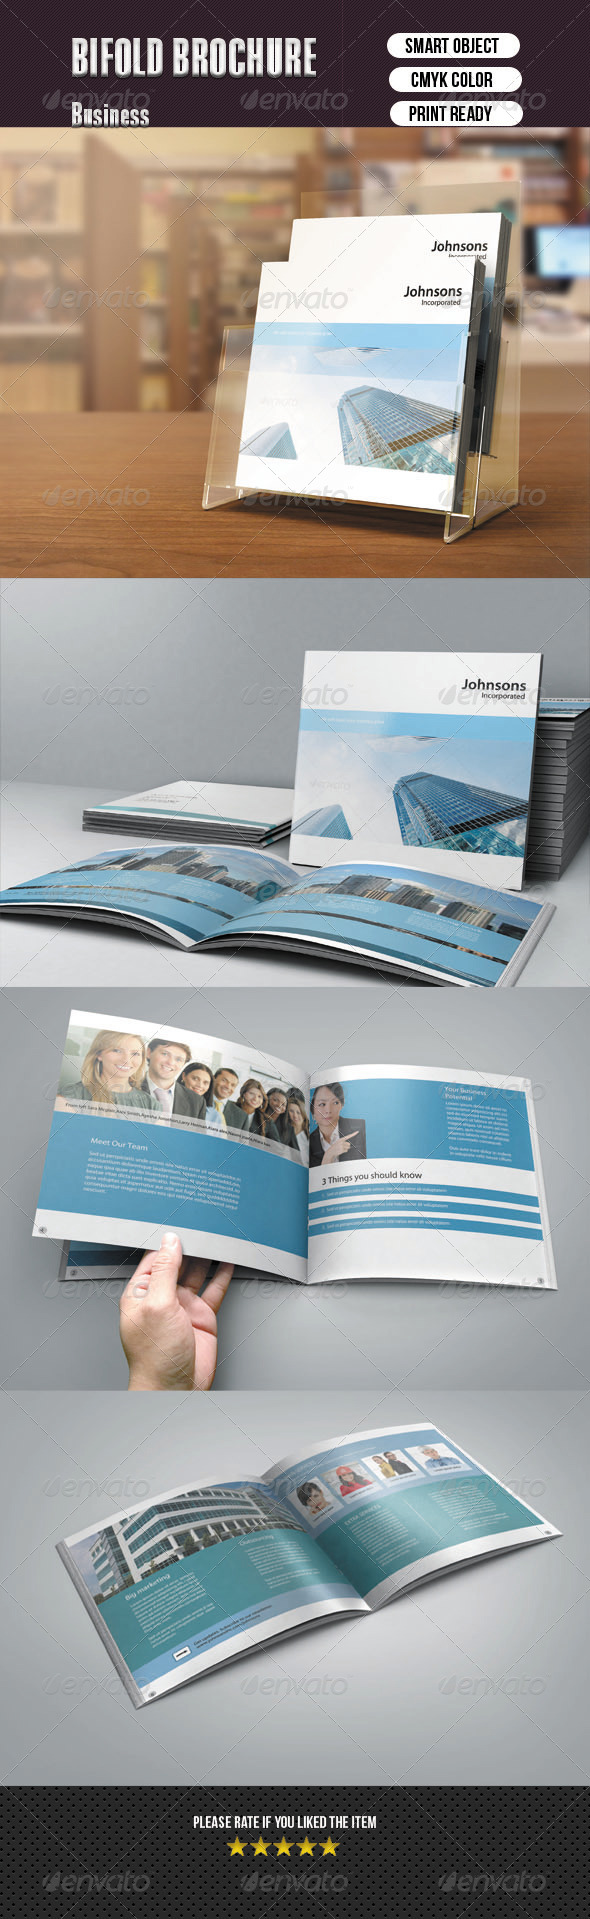 Square Bifold Brochure - Corporate Brochures